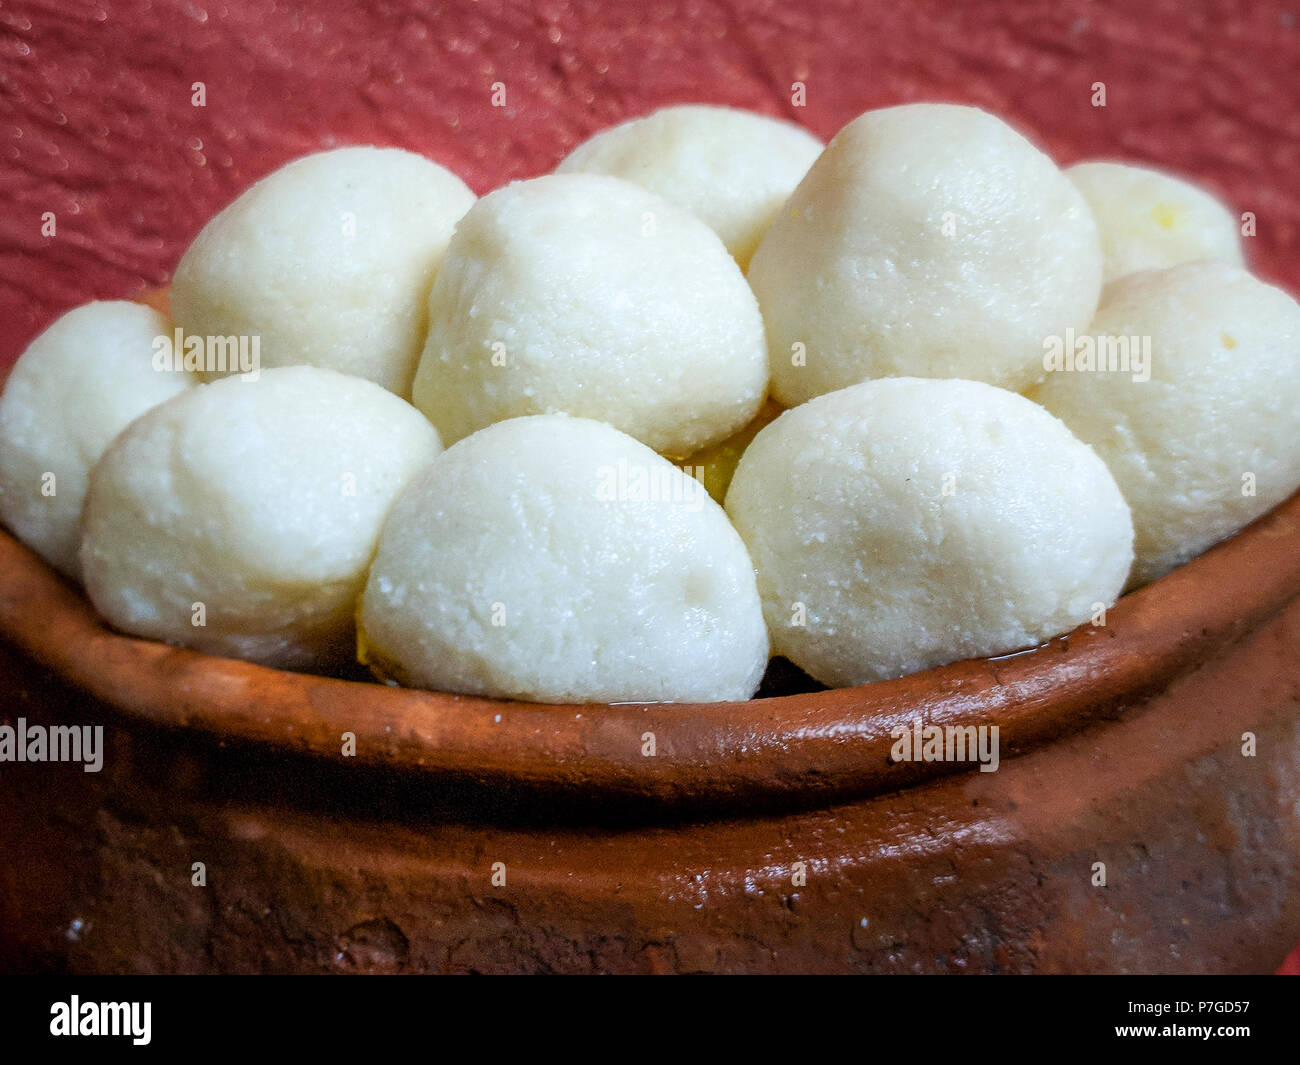 Indian Sweet Rasgulla Also Know as Rosogolla, Roshogolla, Rasagola, Ras Gulla is a Syrupy Dessert Popular in India. Selective focuse is used. - Stock Image